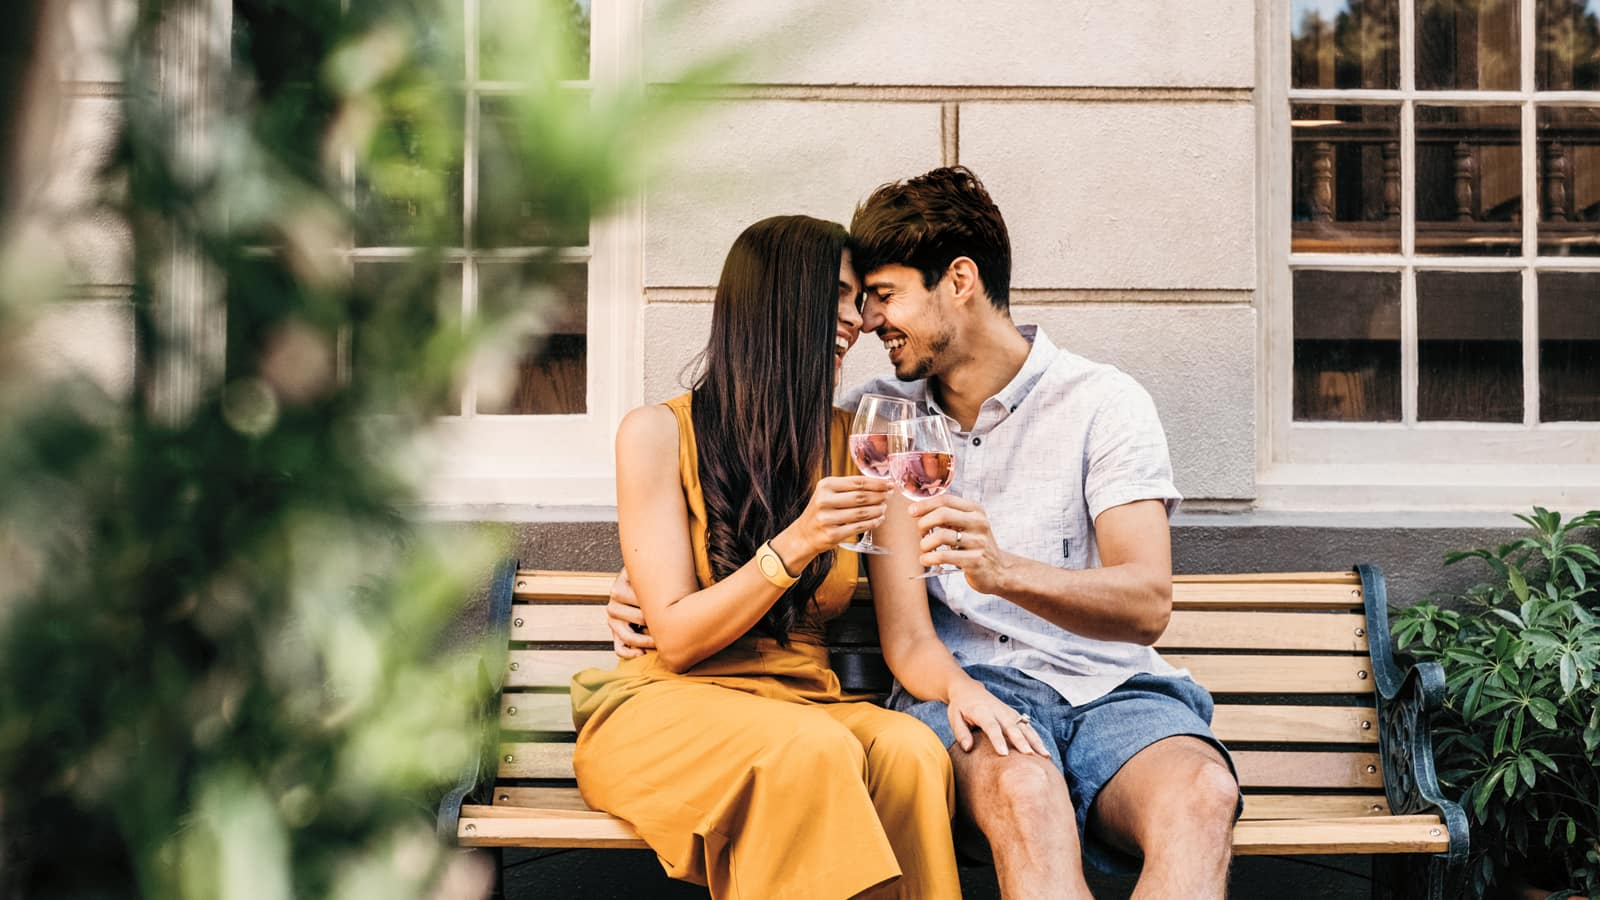 A couple embraces on a bench as they toast with wine